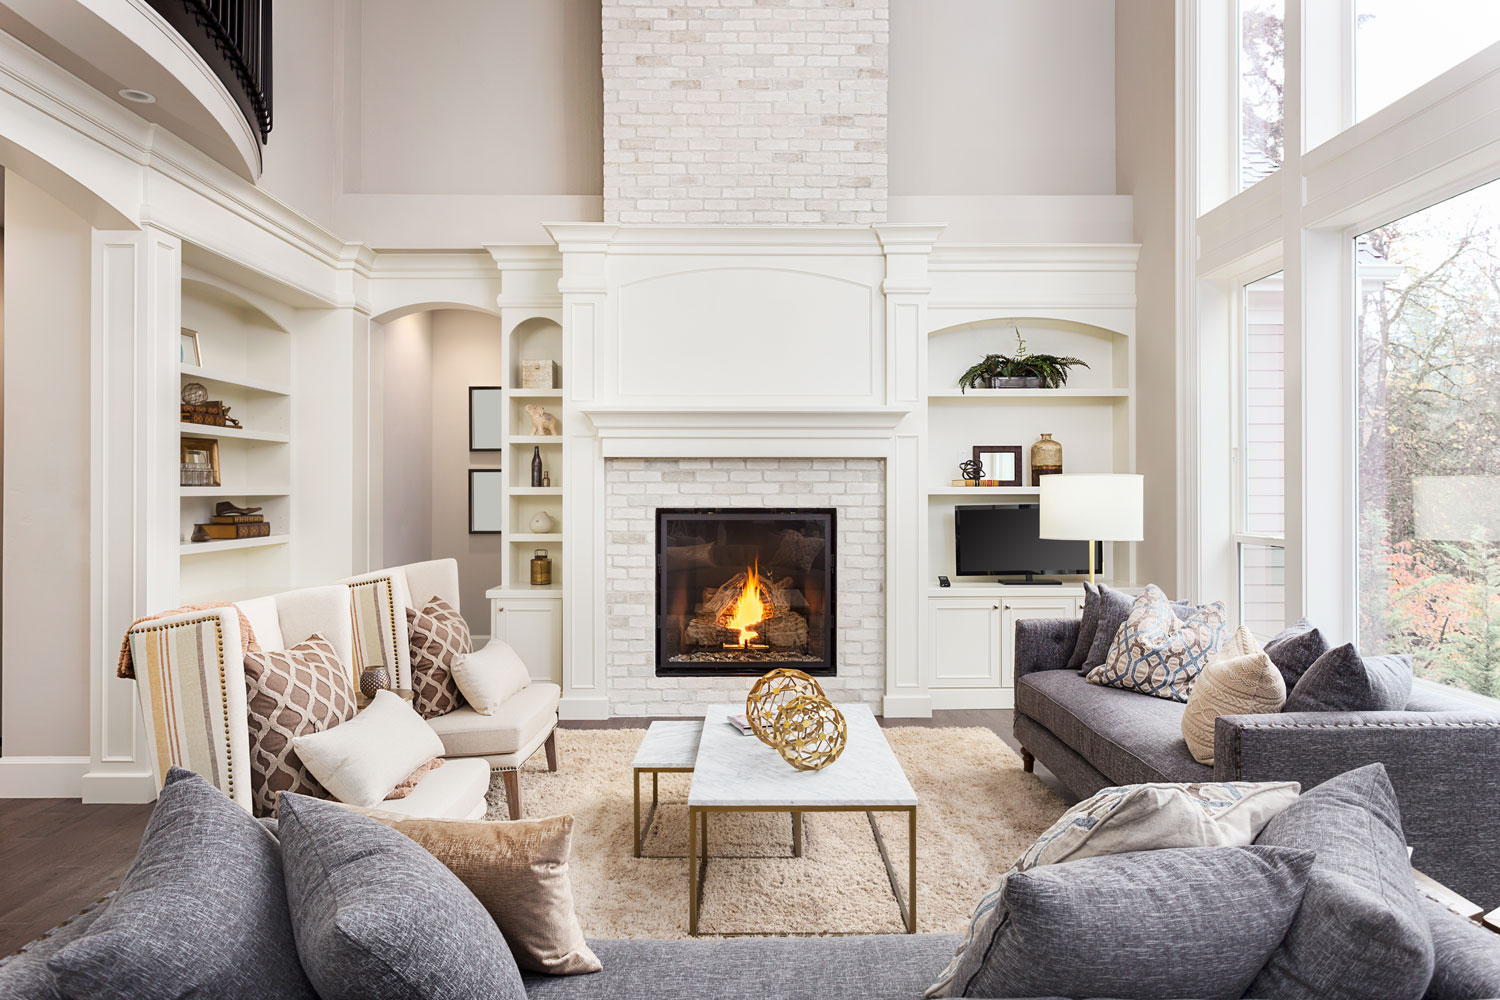 living-room-interior-designer-custom-window-treatments-interior-eloquence-haymarket-virginia.jpg